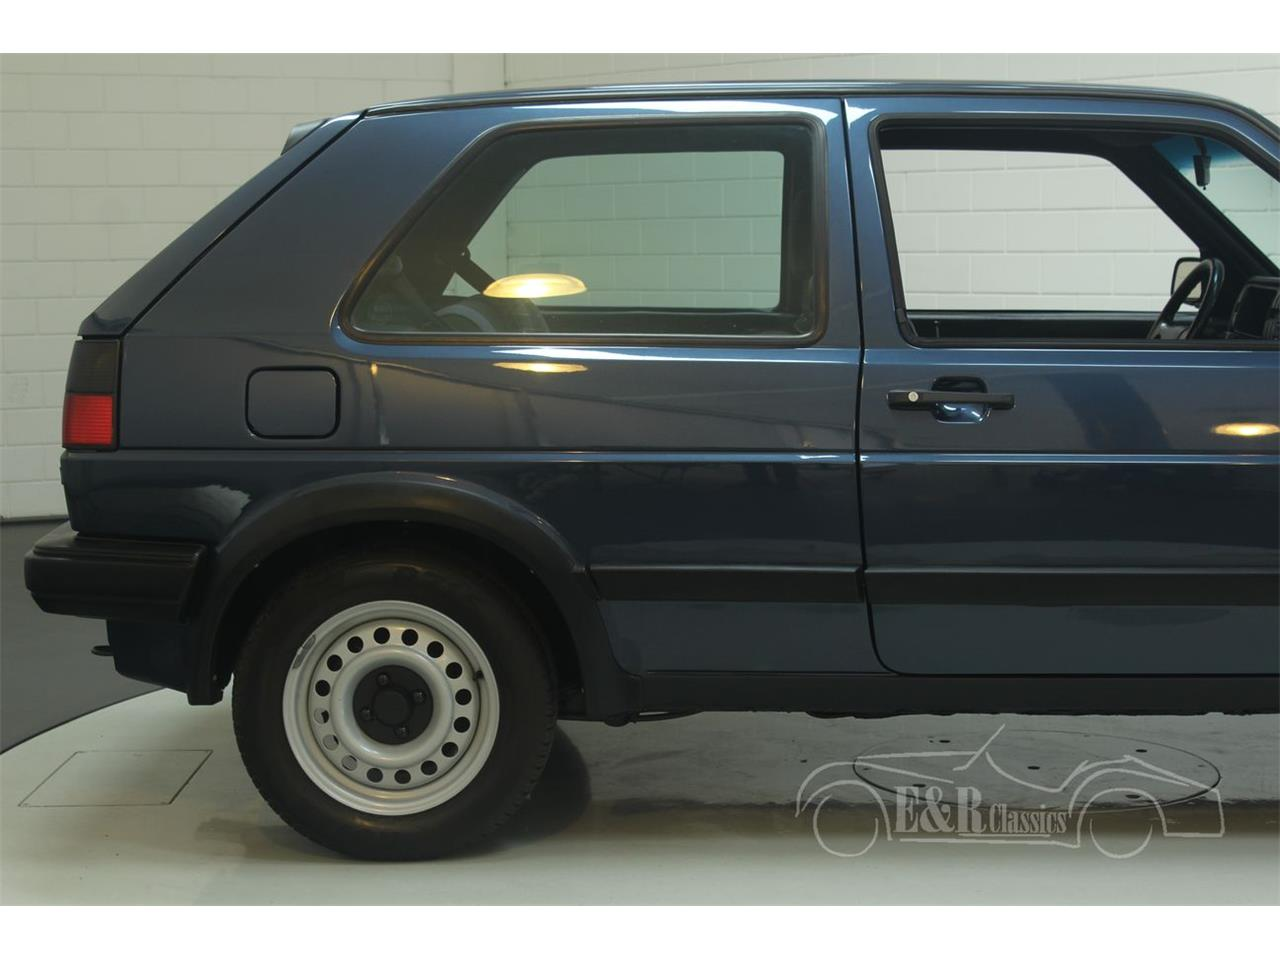 Large Picture of '88 Volkswagen Golf located in Waalwijk Noord-Brabant Offered by E & R Classics - PGLO